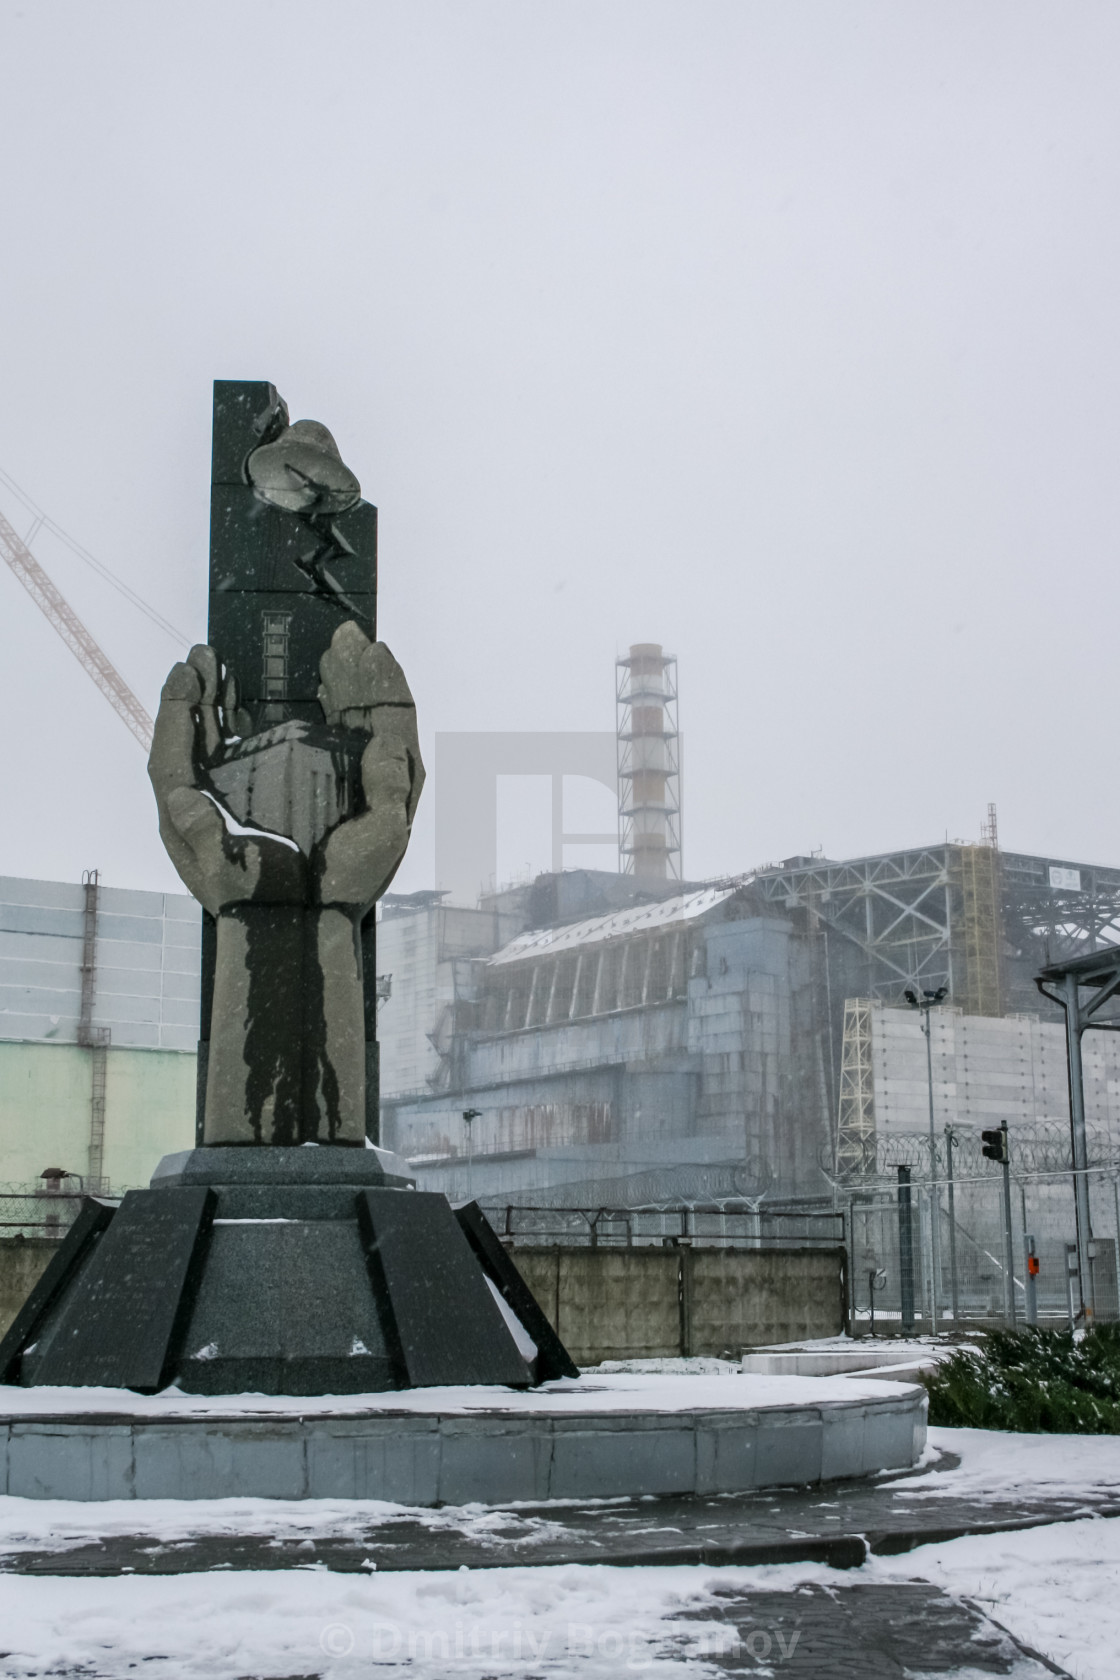 Chernobyl nuclear power plant and sarcophagus  - License